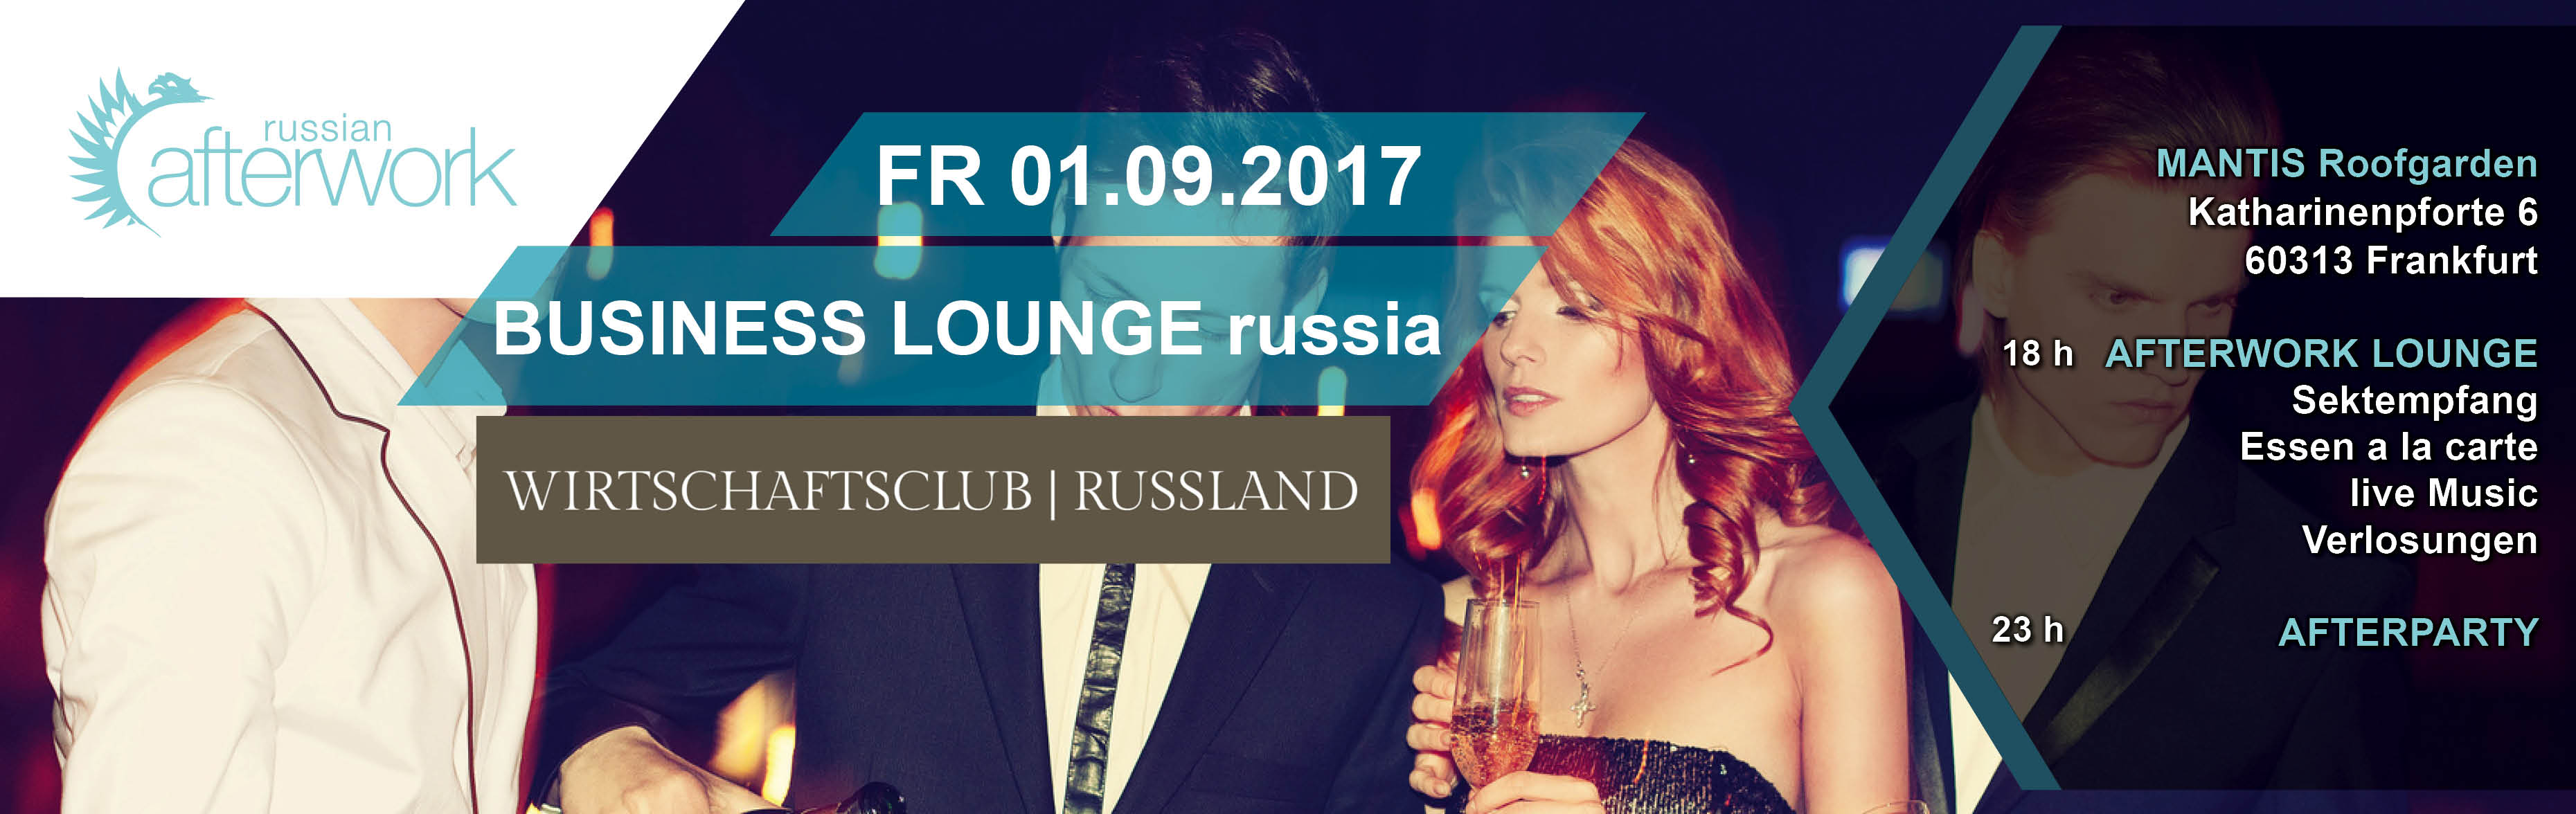 Frankfurt 192017 Business Lounge Russian Afterwork